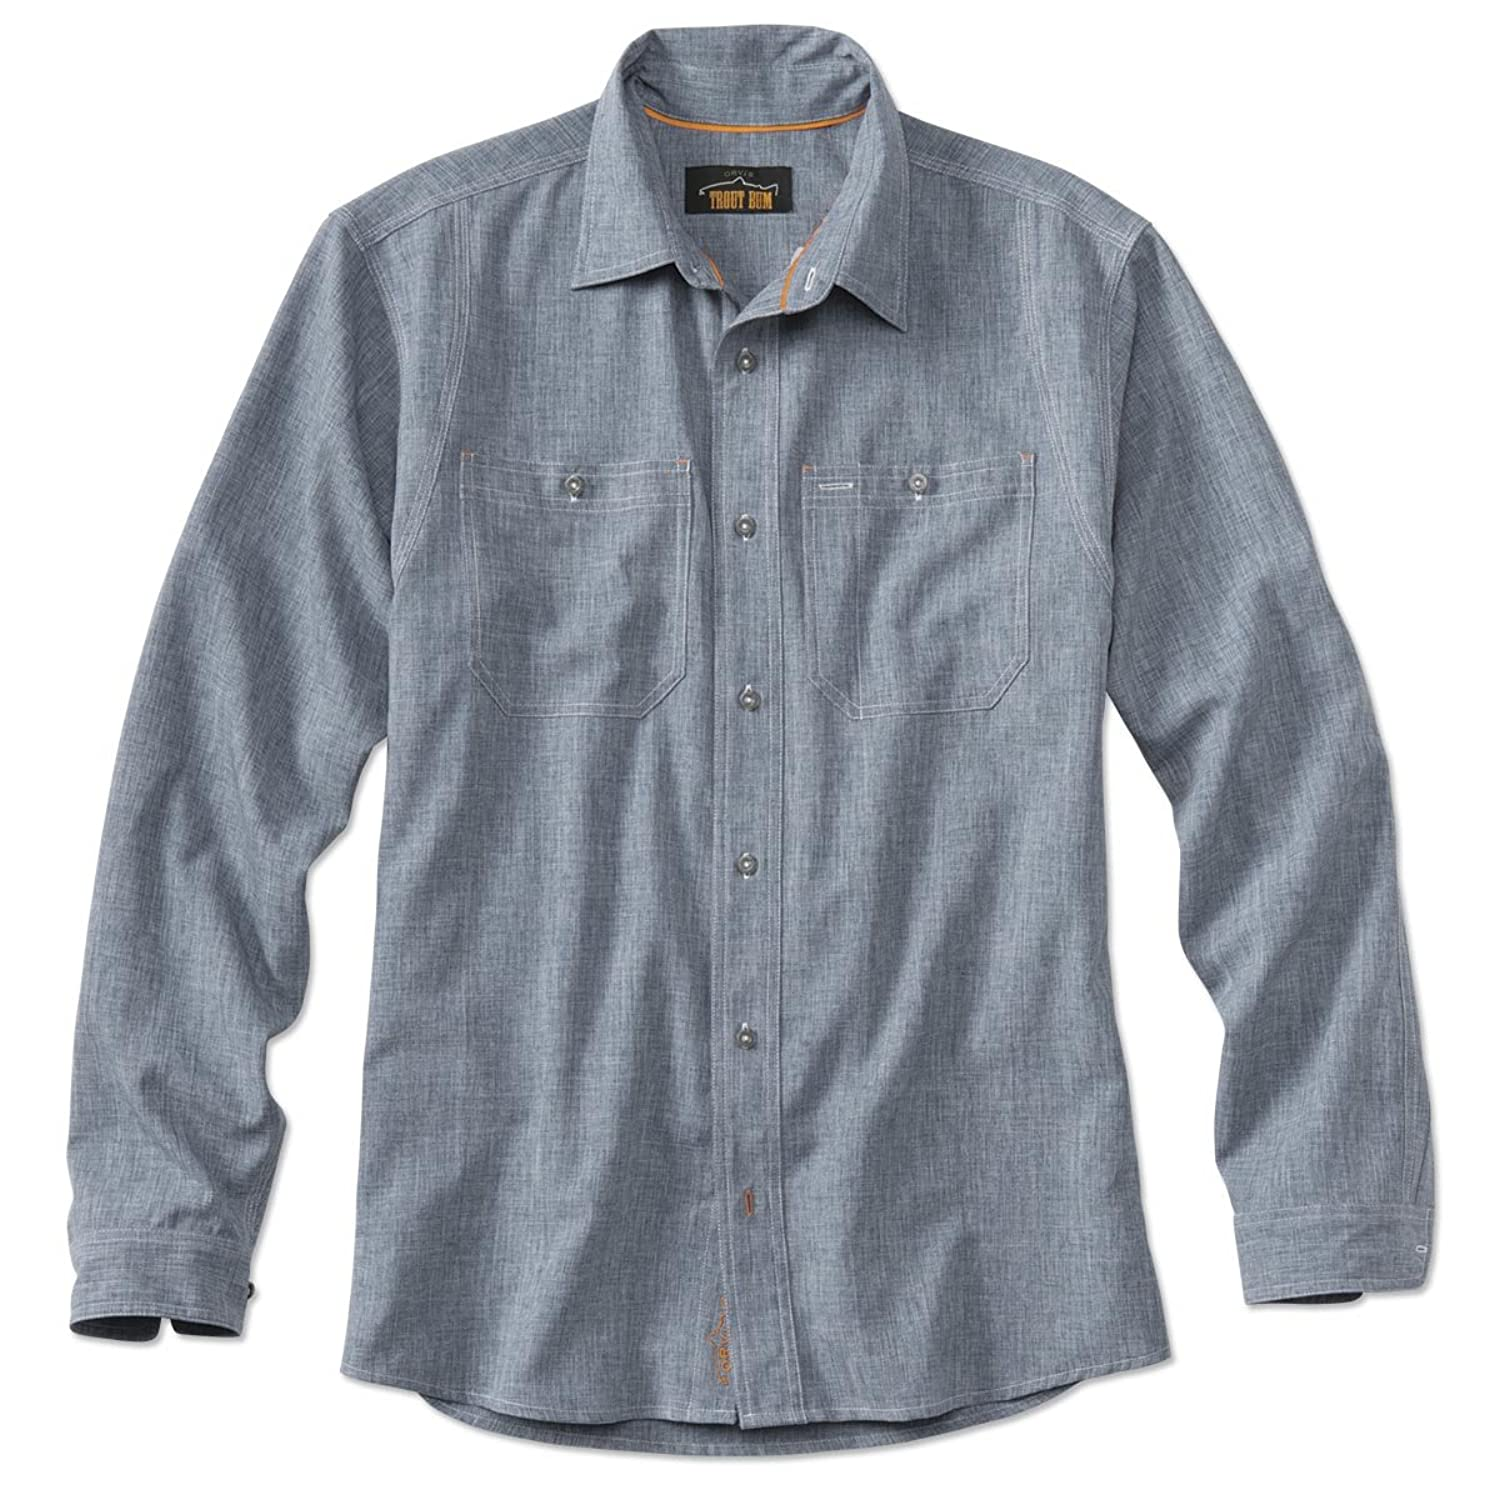 1920s Style Mens Shirts | Peaky Blinders Shirts and Collars Orvis Tech Chambray Work Shirt $89.00 AT vintagedancer.com